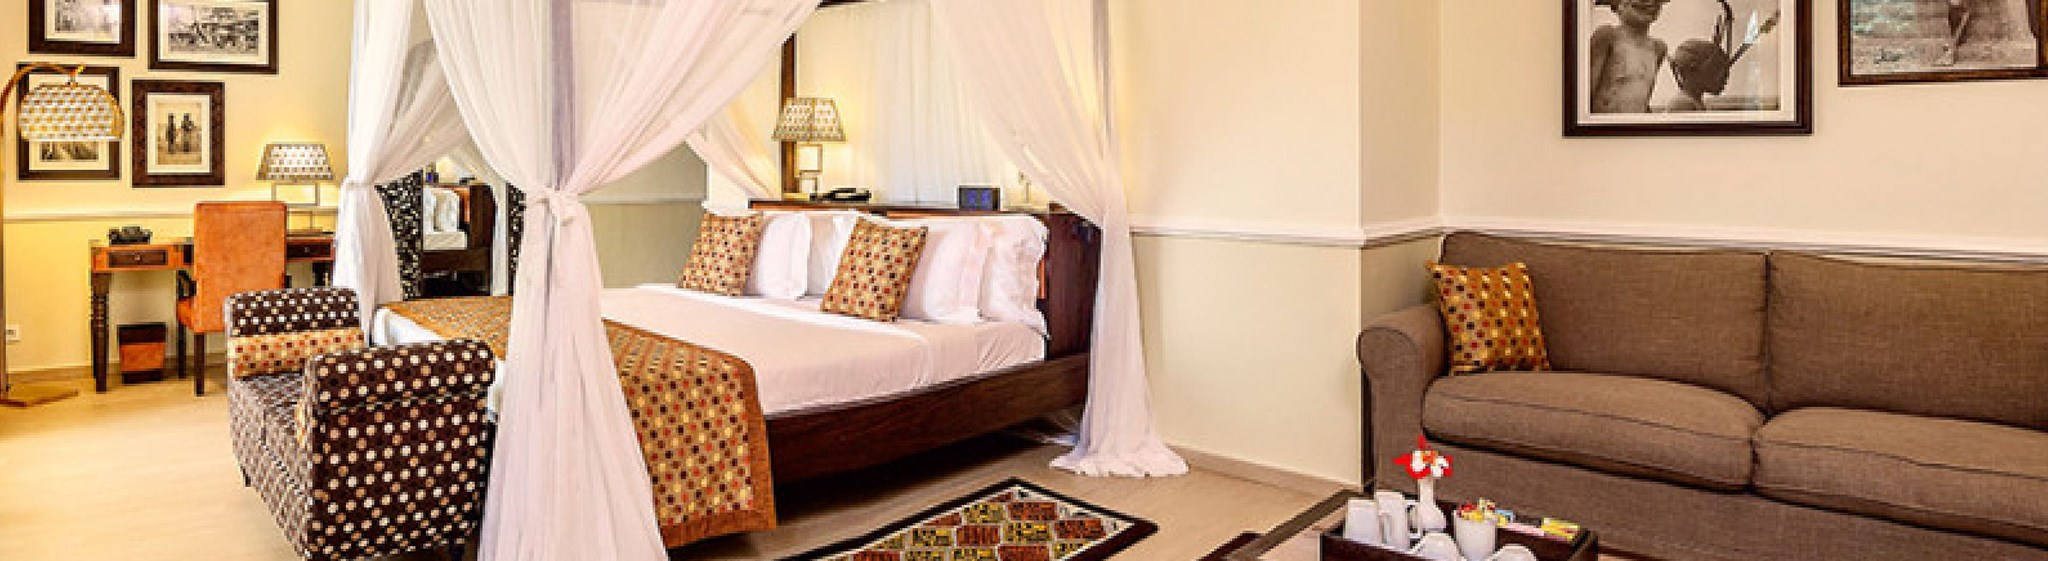 DoubleTree Resort by Hilton Hotel Zanzibar - Nungwi - Safanta Tours & Travel Company Limited